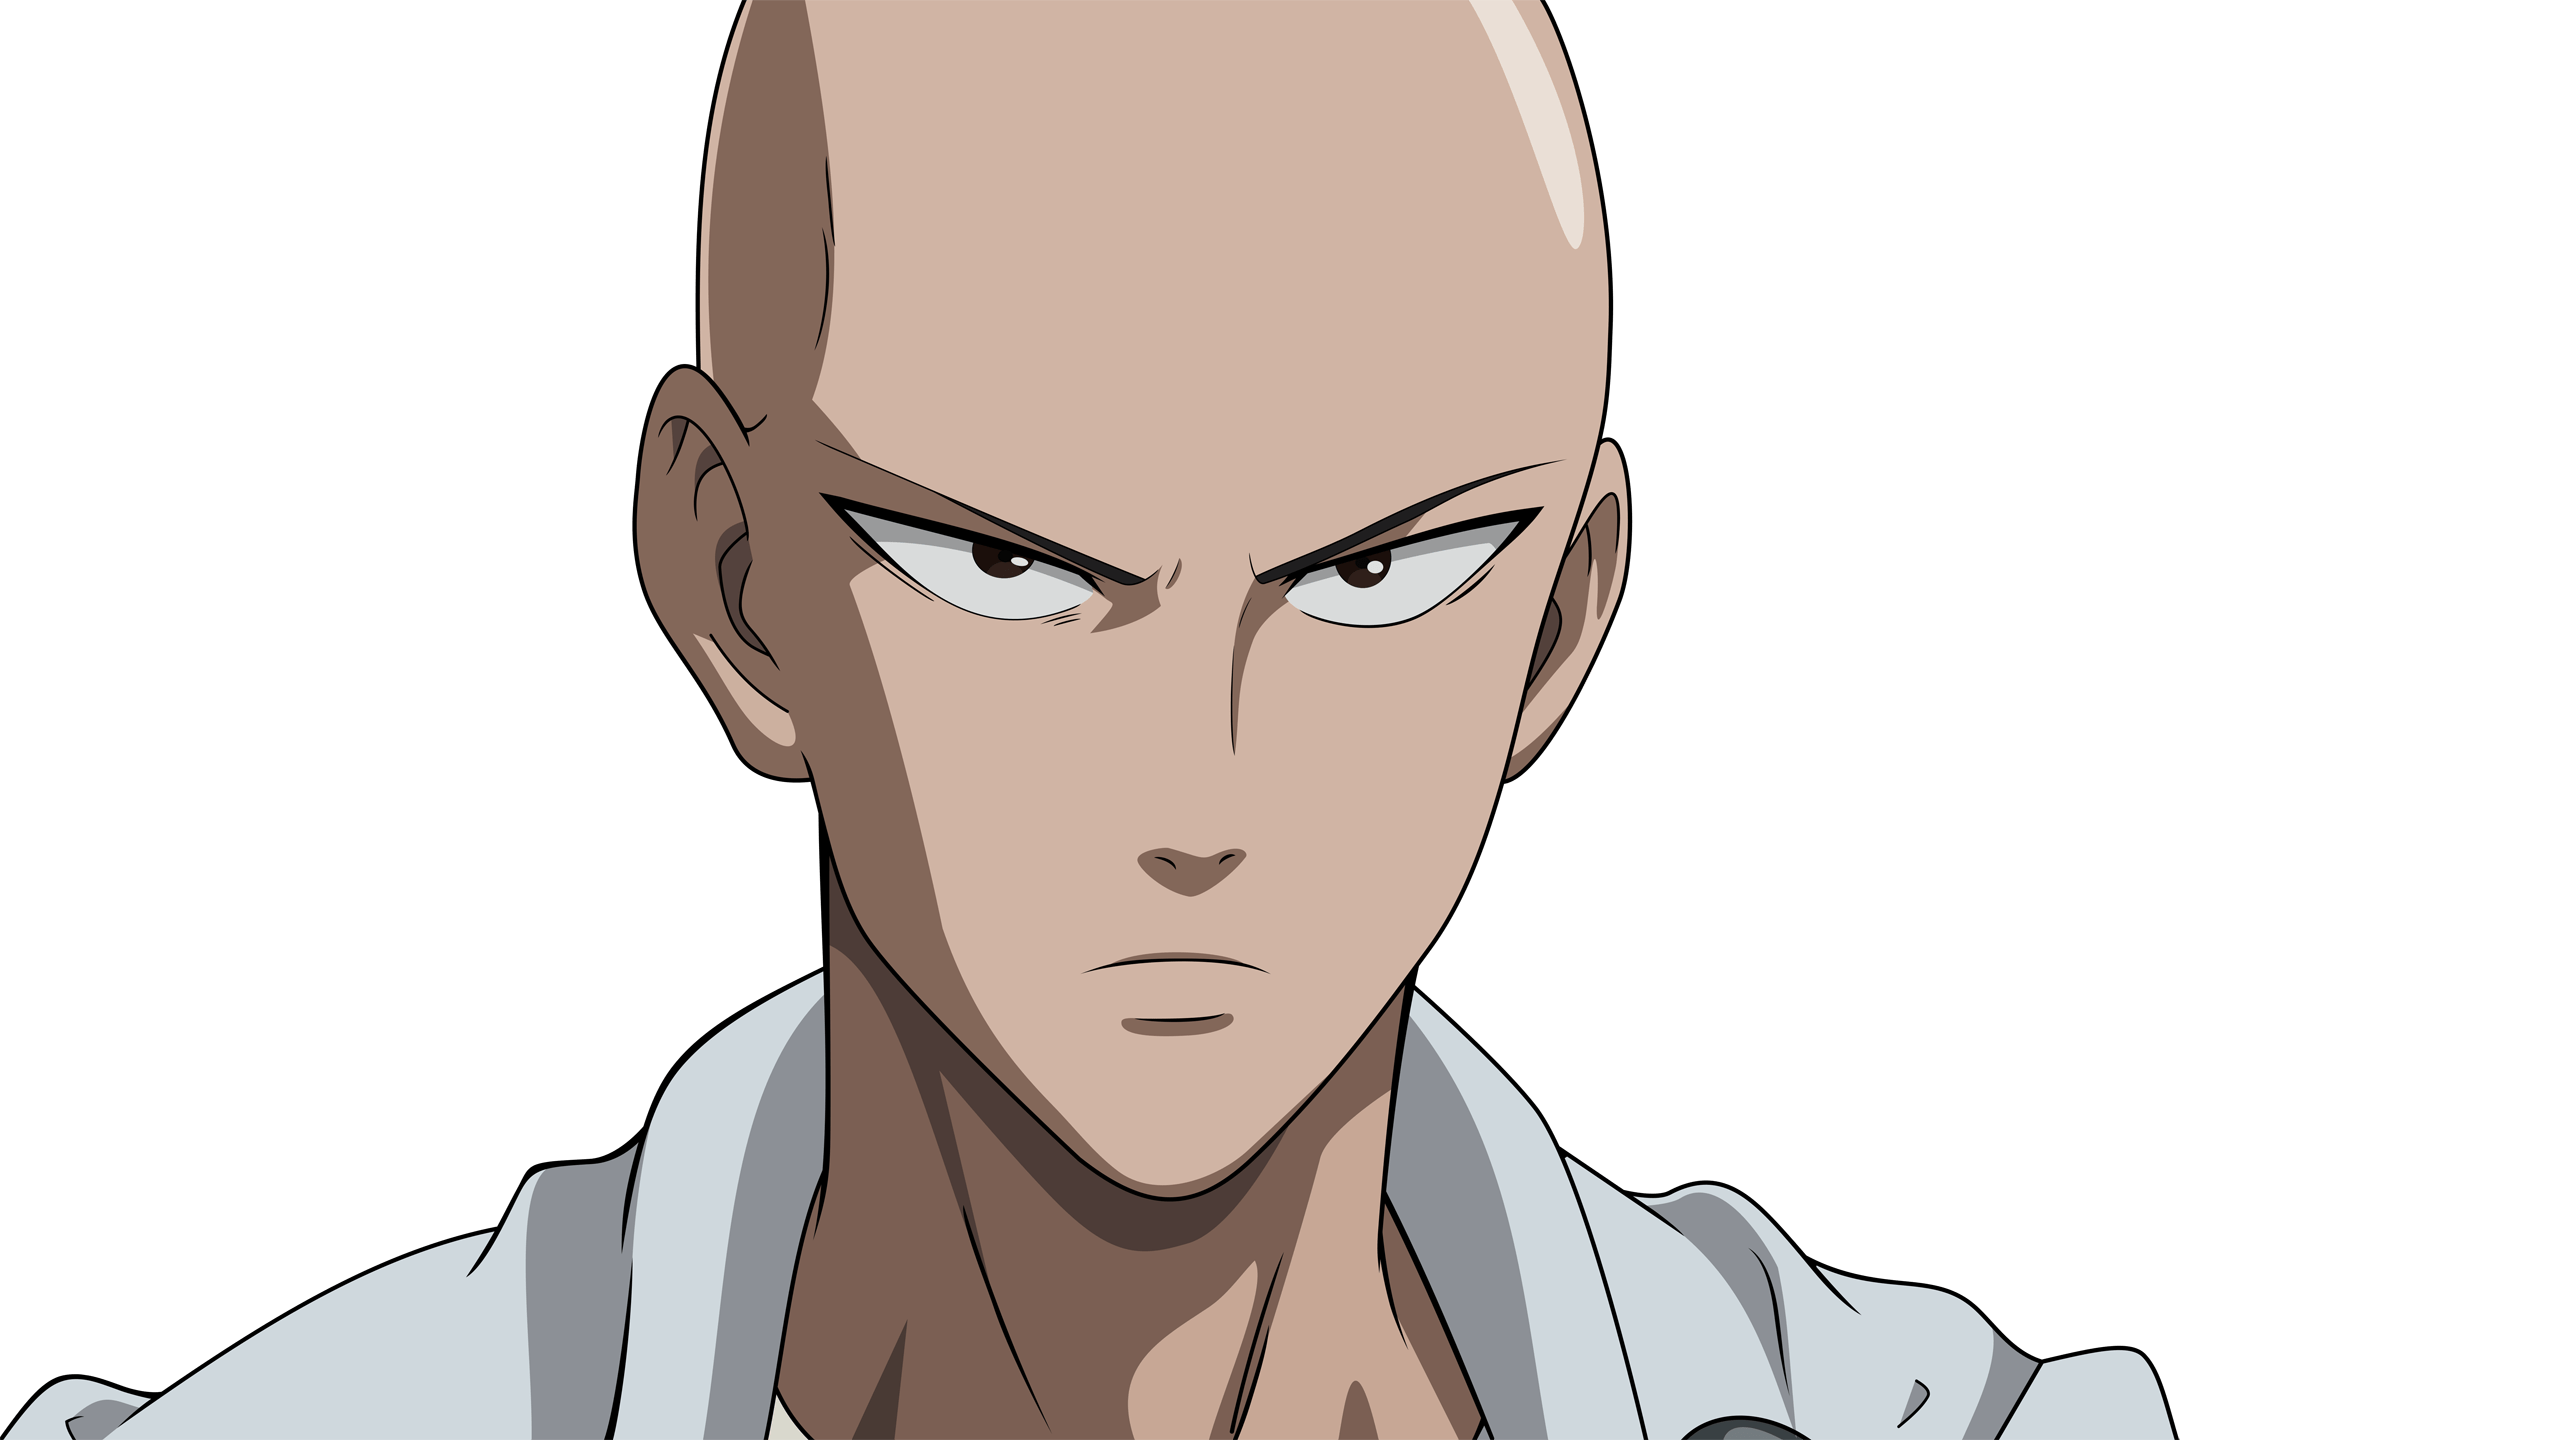 Saitama Cool Face One Punch Man HD Wallpaper Stuff to